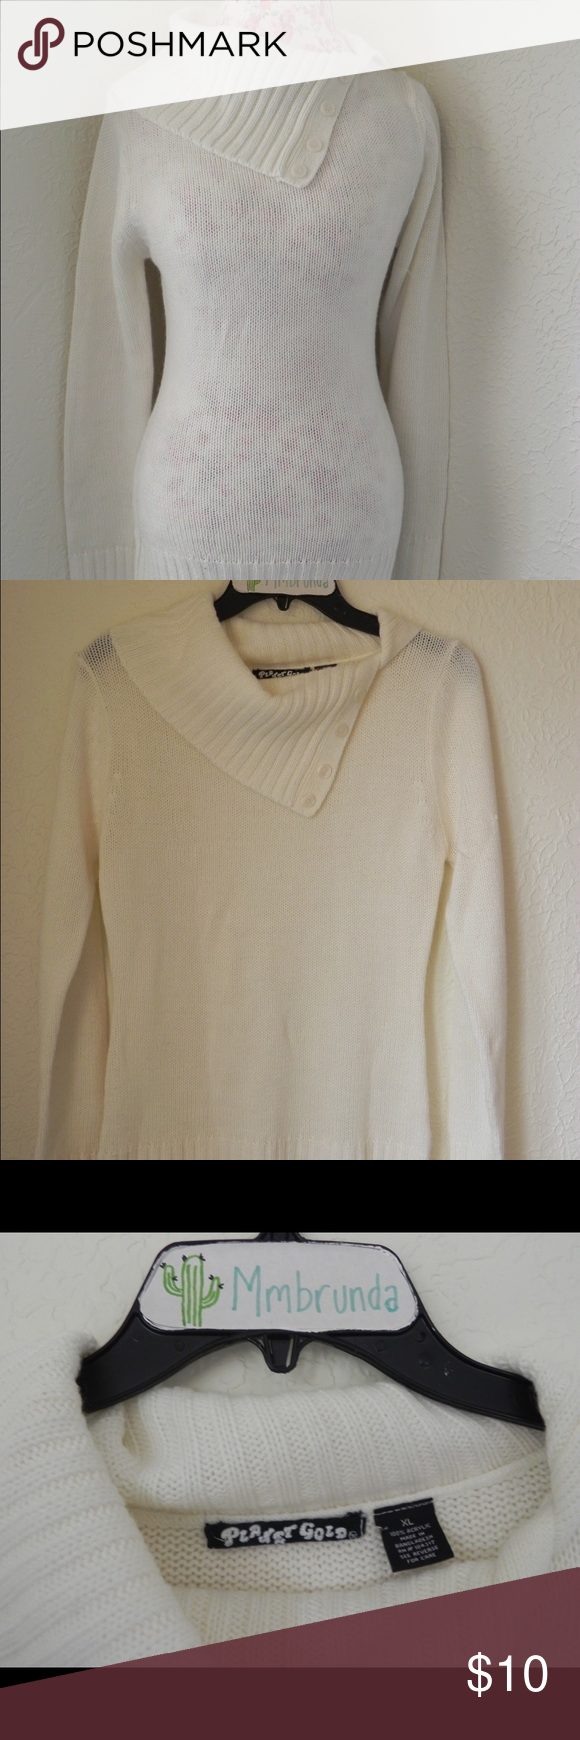 Beautiful Cream Turtleneck Sweater Cream colored Turtleneck ...